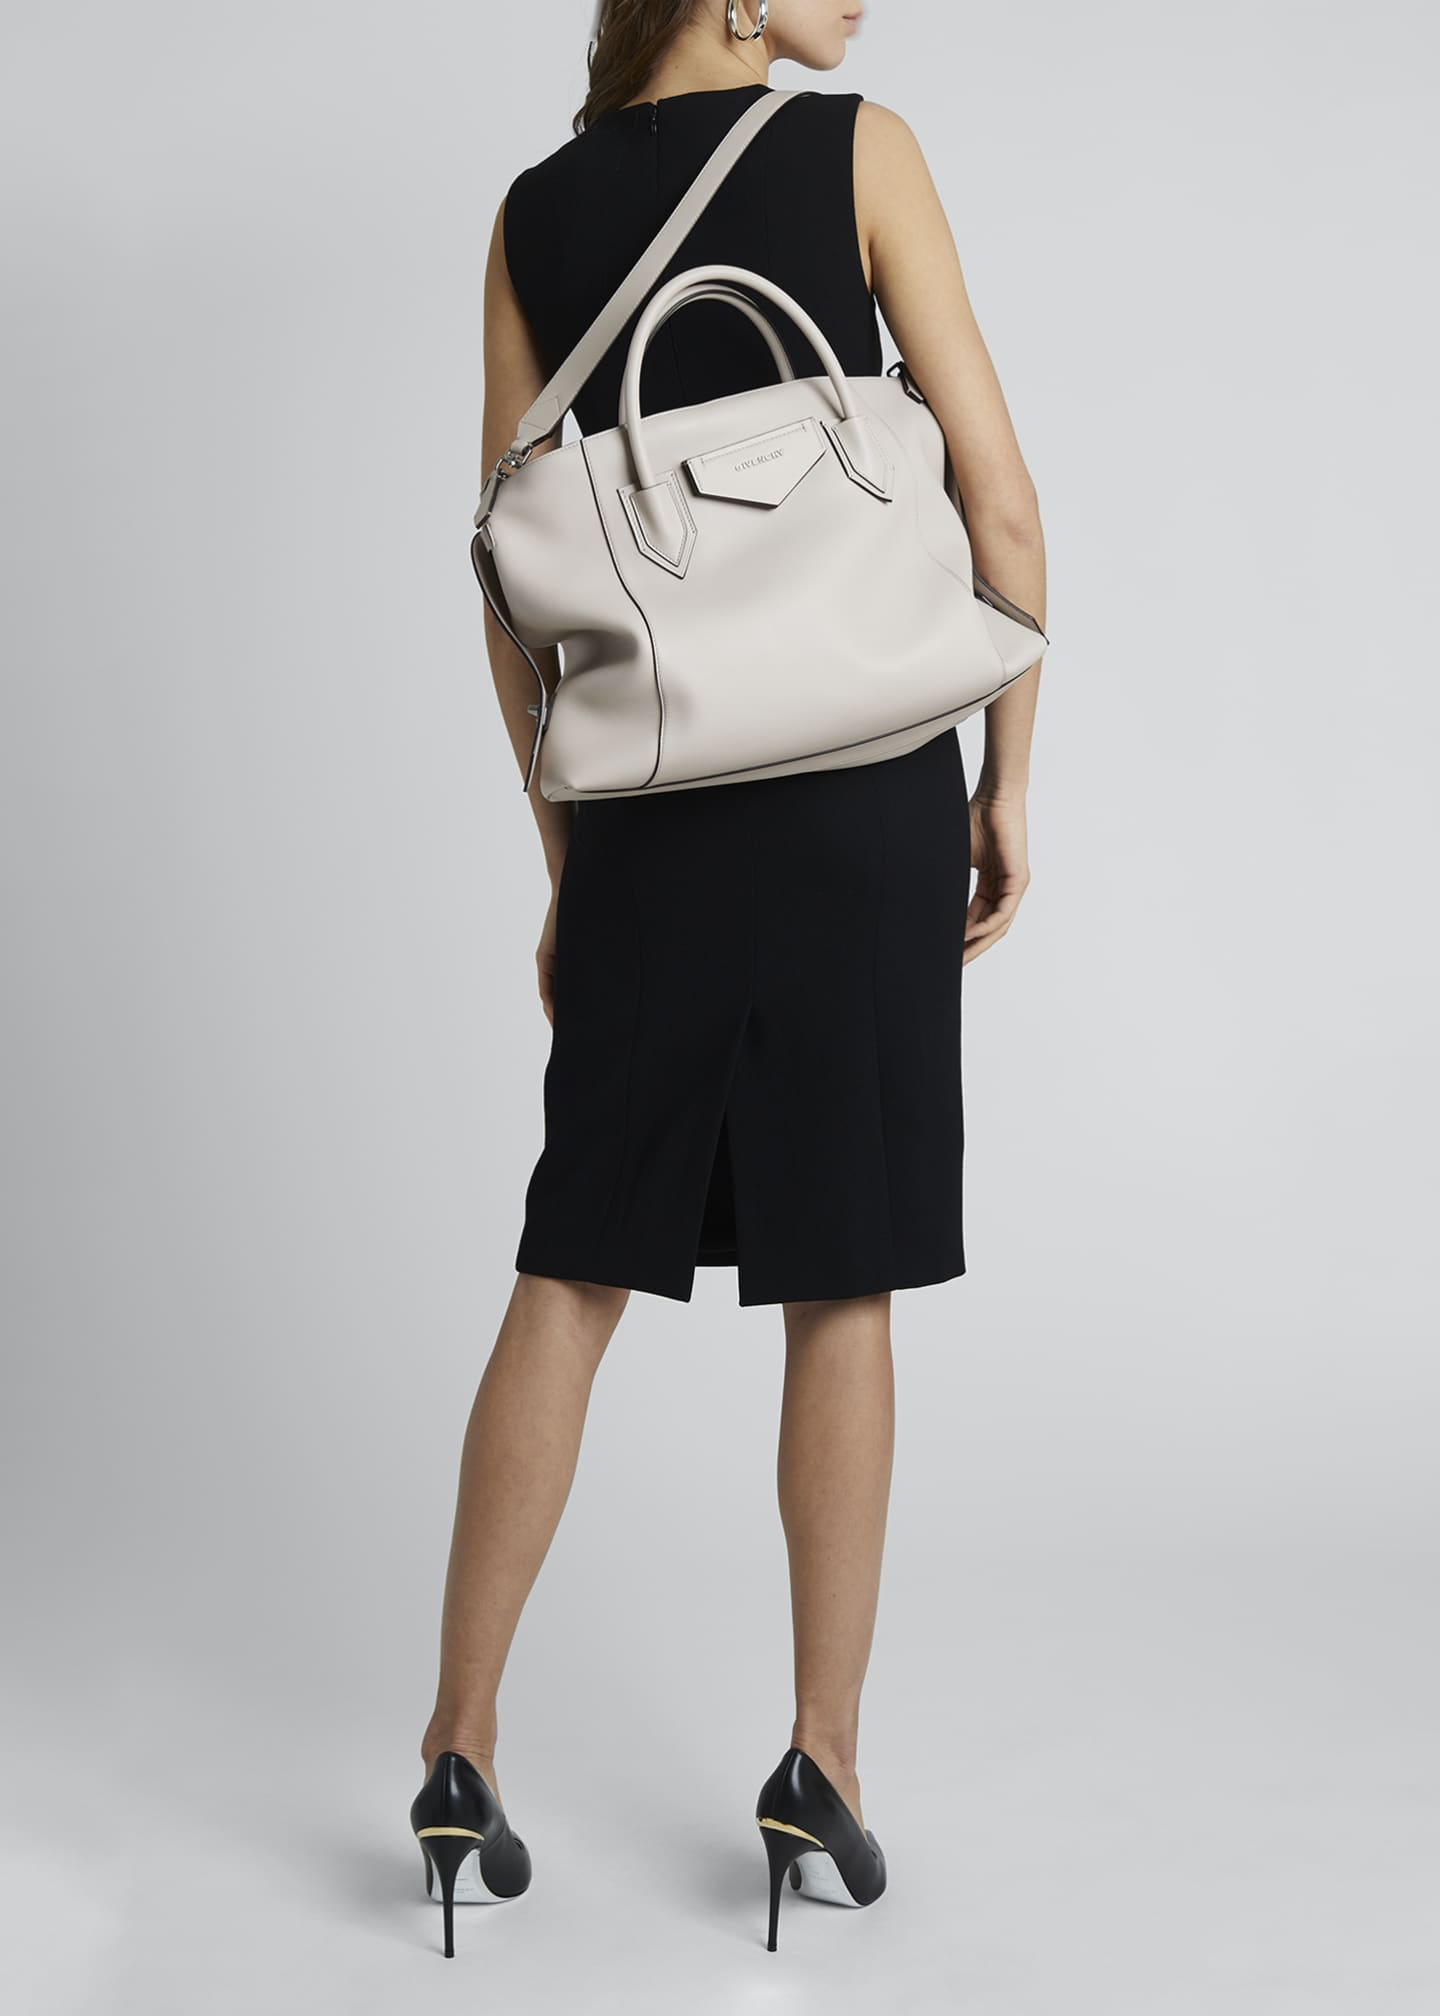 Image 5 of 5: Antigona Soft Medium Leather Bag